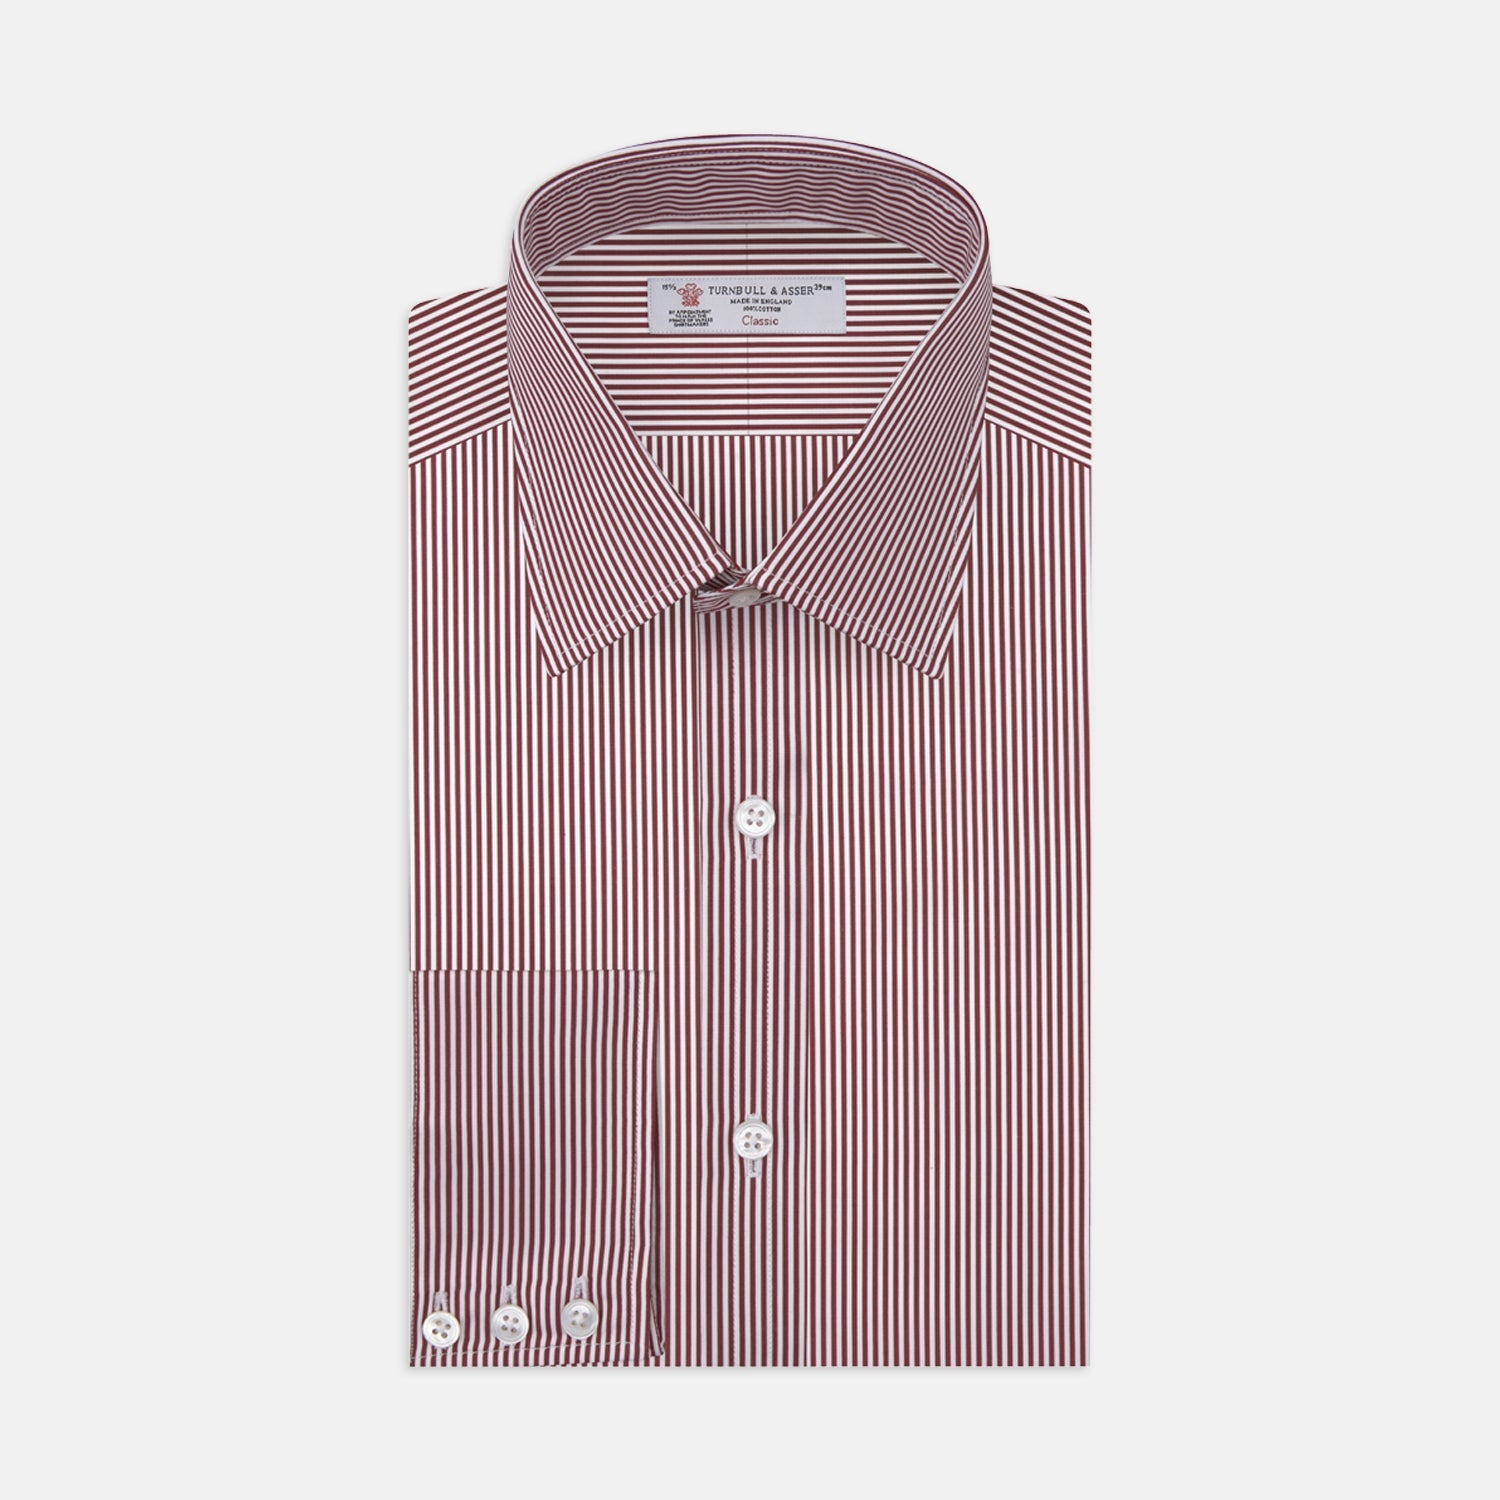 White and Burgundy Stripe Cotton Shirt with T&A Collar and 3-Button Cuffs